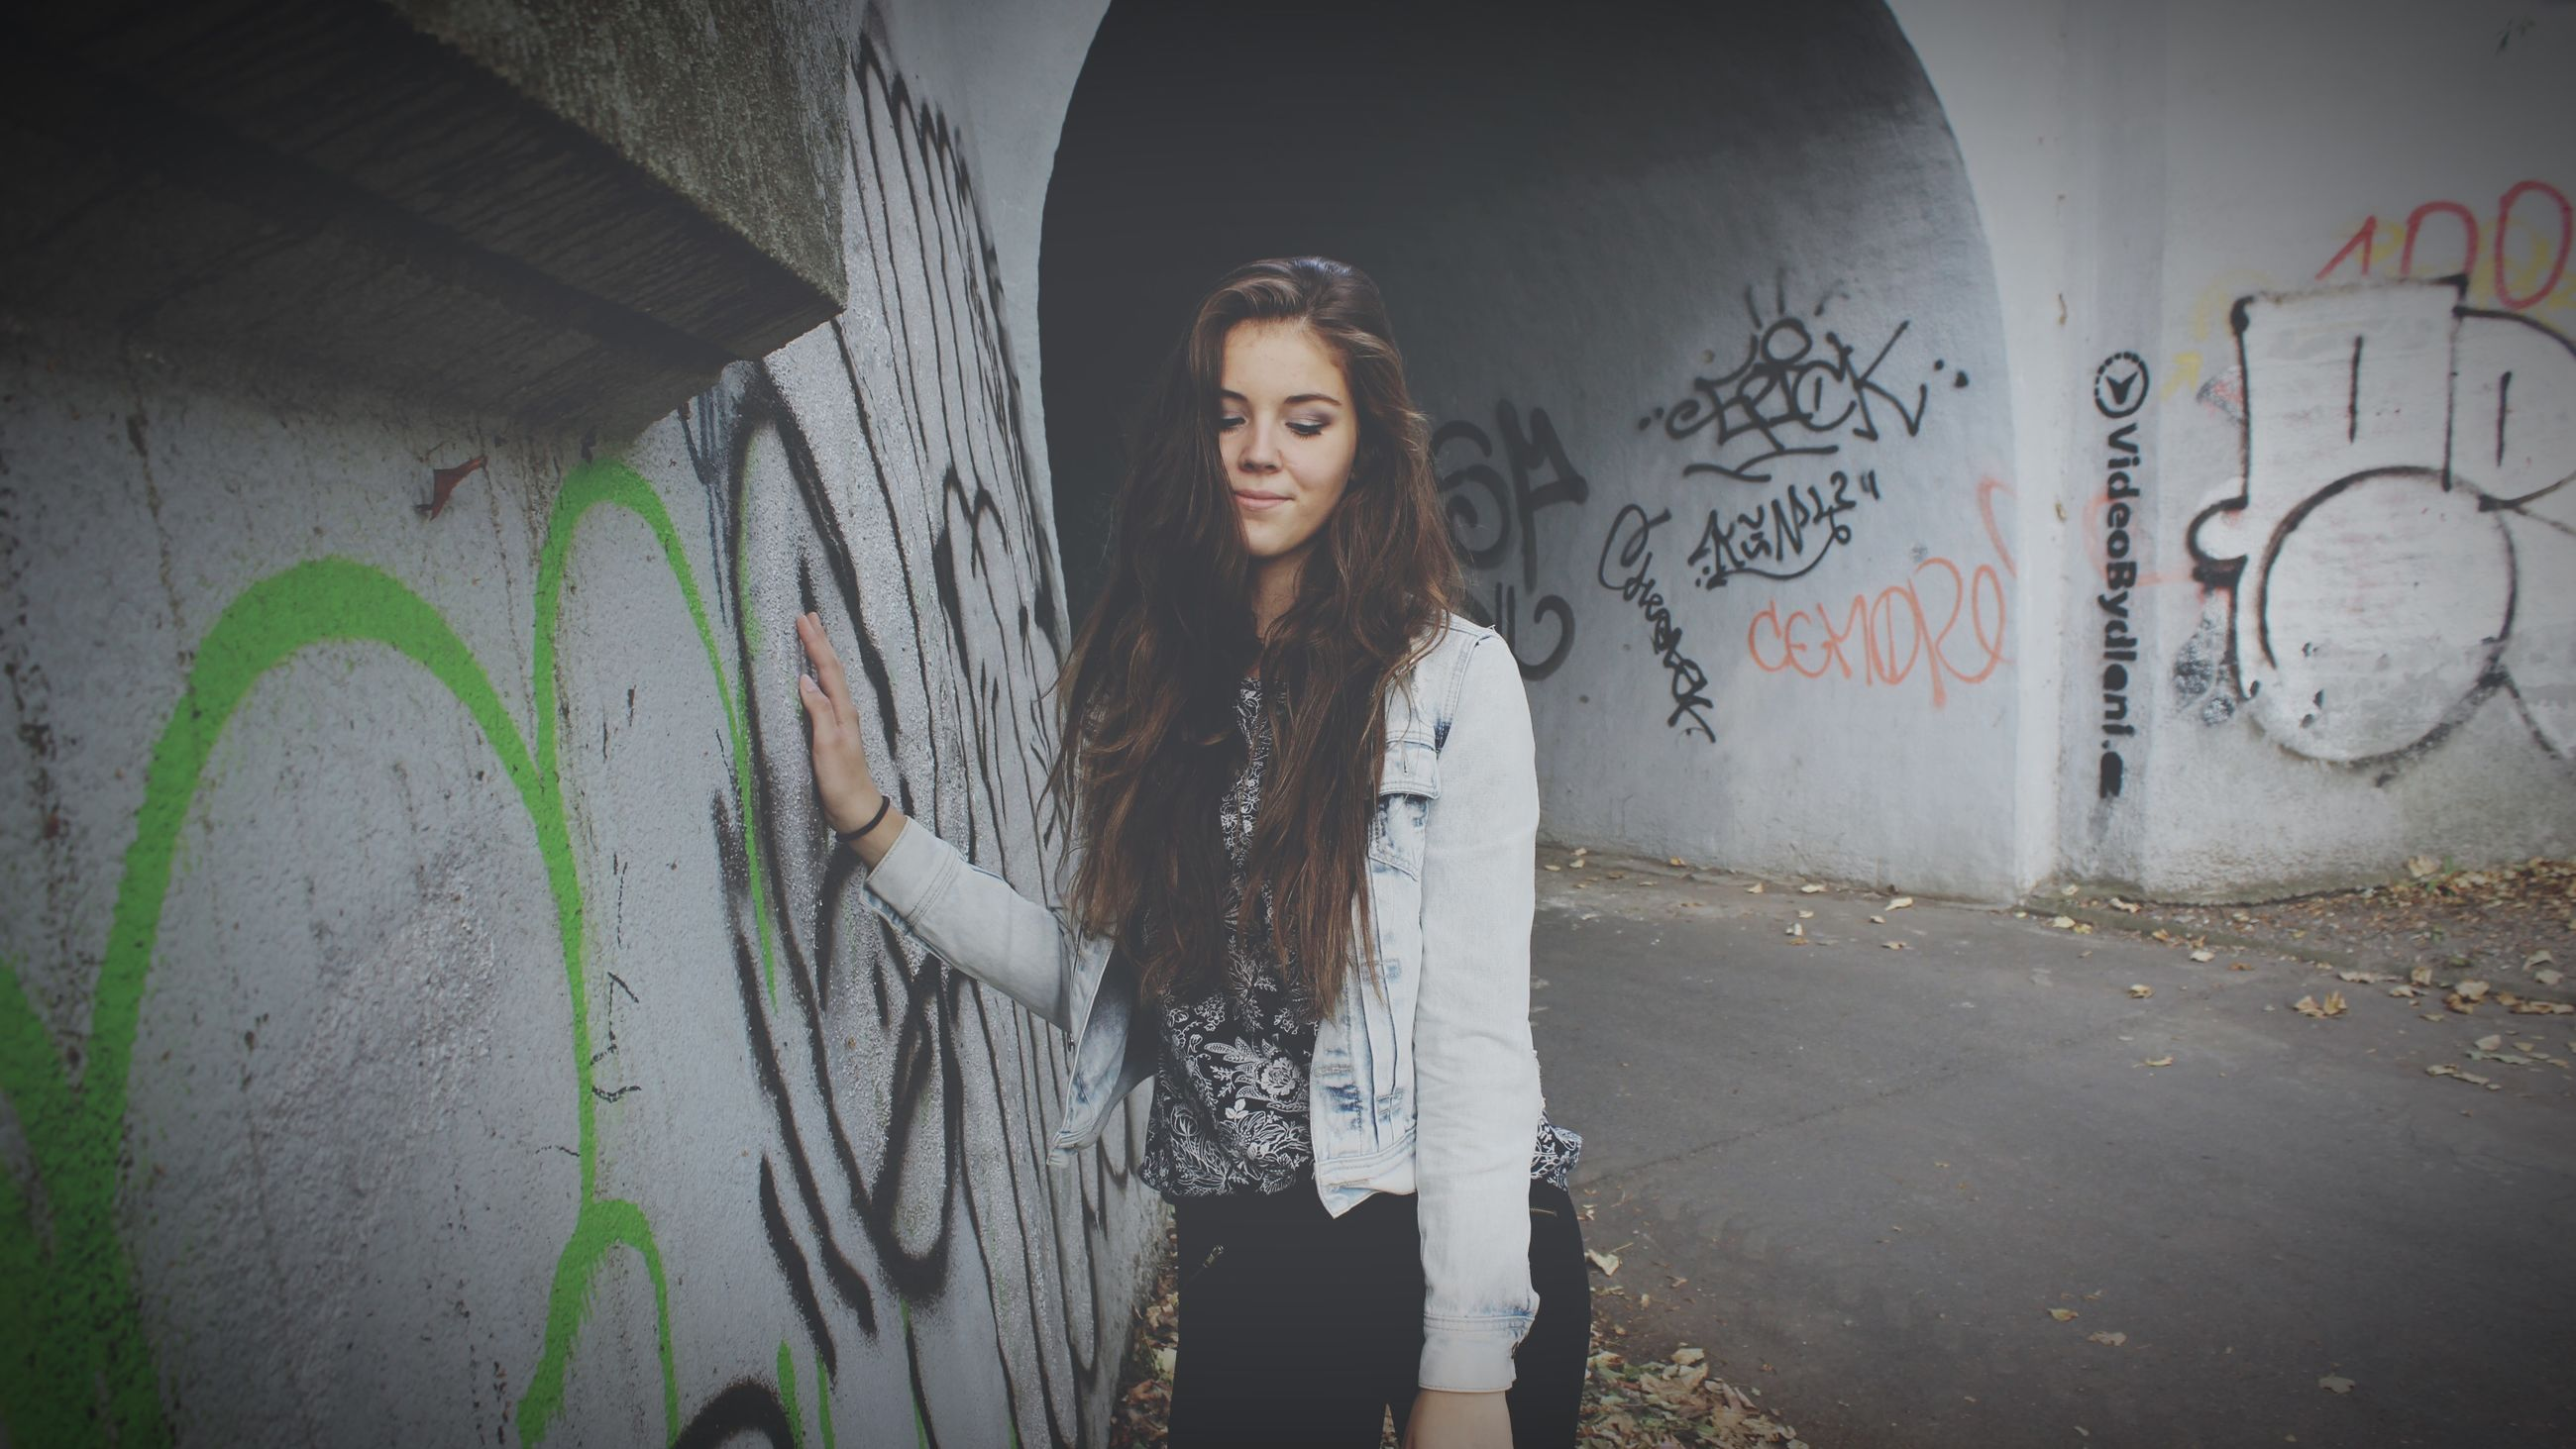 graffiti, wall - building feature, architecture, young adult, built structure, lifestyles, person, art, front view, text, creativity, casual clothing, young women, looking at camera, art and craft, wall, standing, portrait